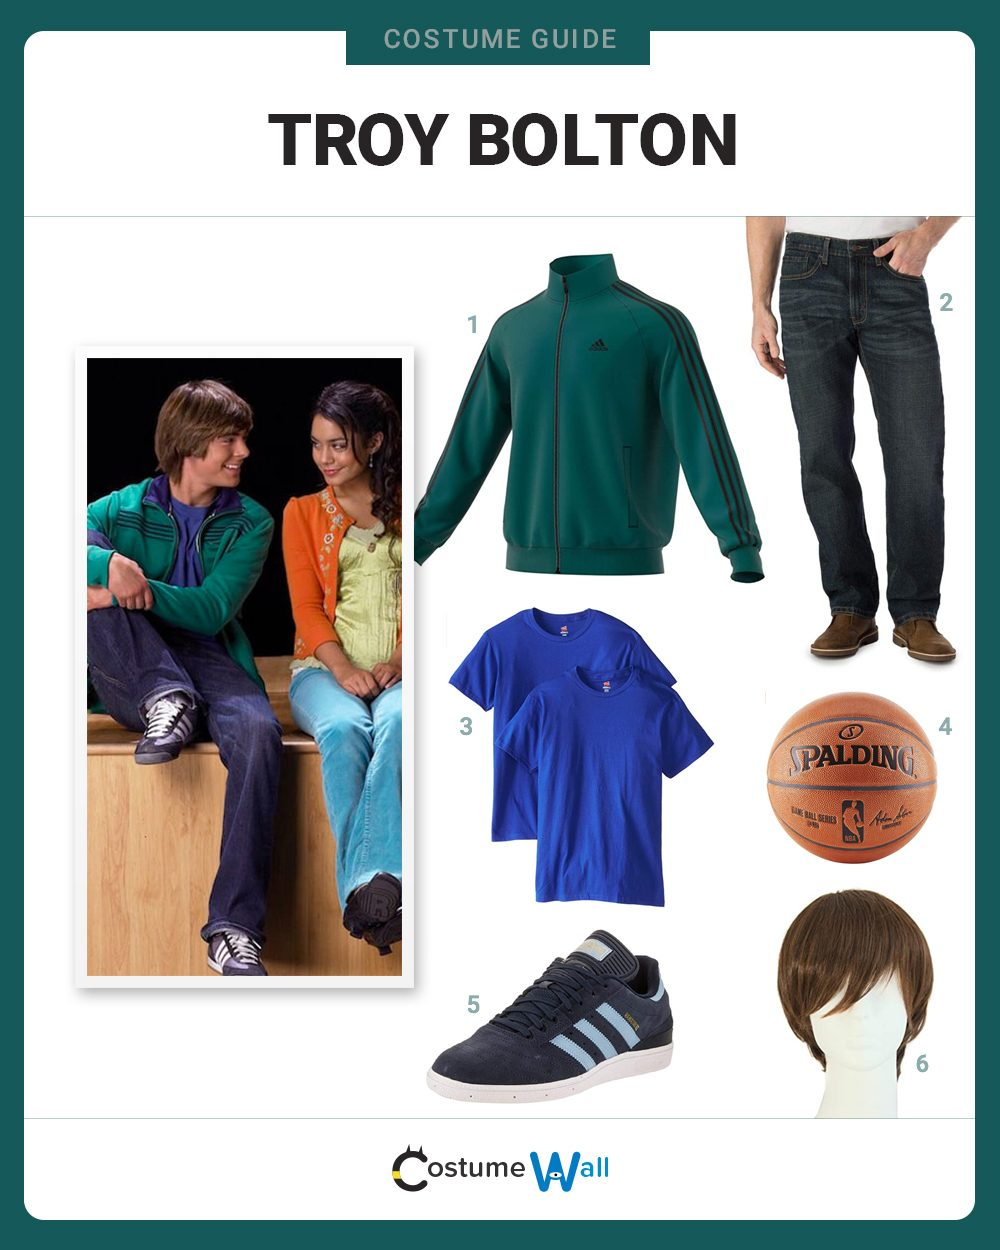 Troy Bolton Costume Guide